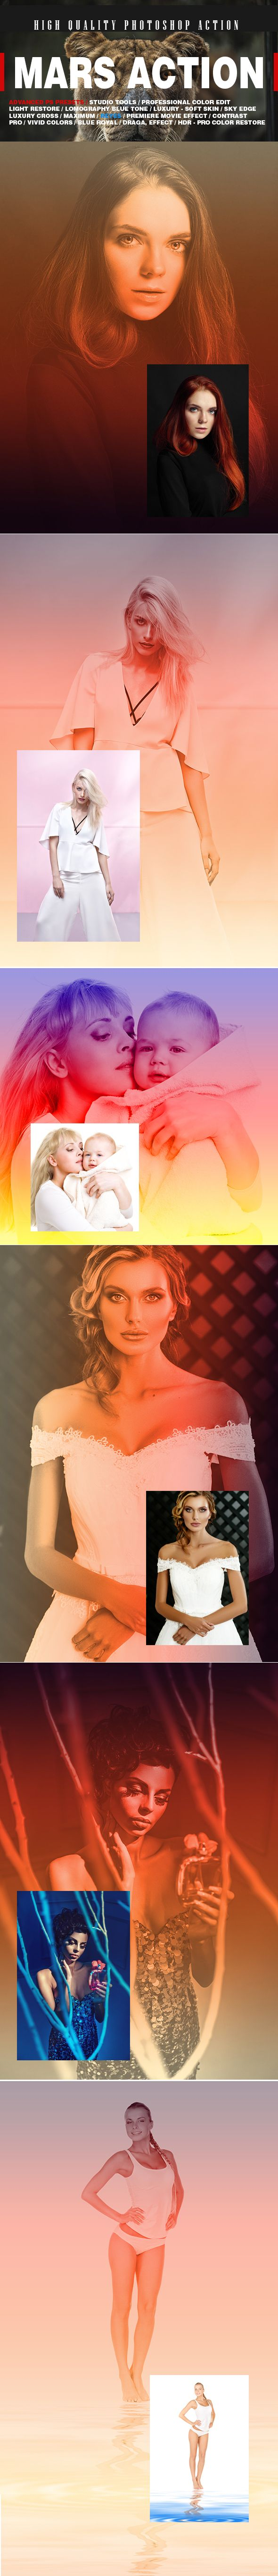 PROFESSIONAL MARS ACTION - Photo Effects Actions